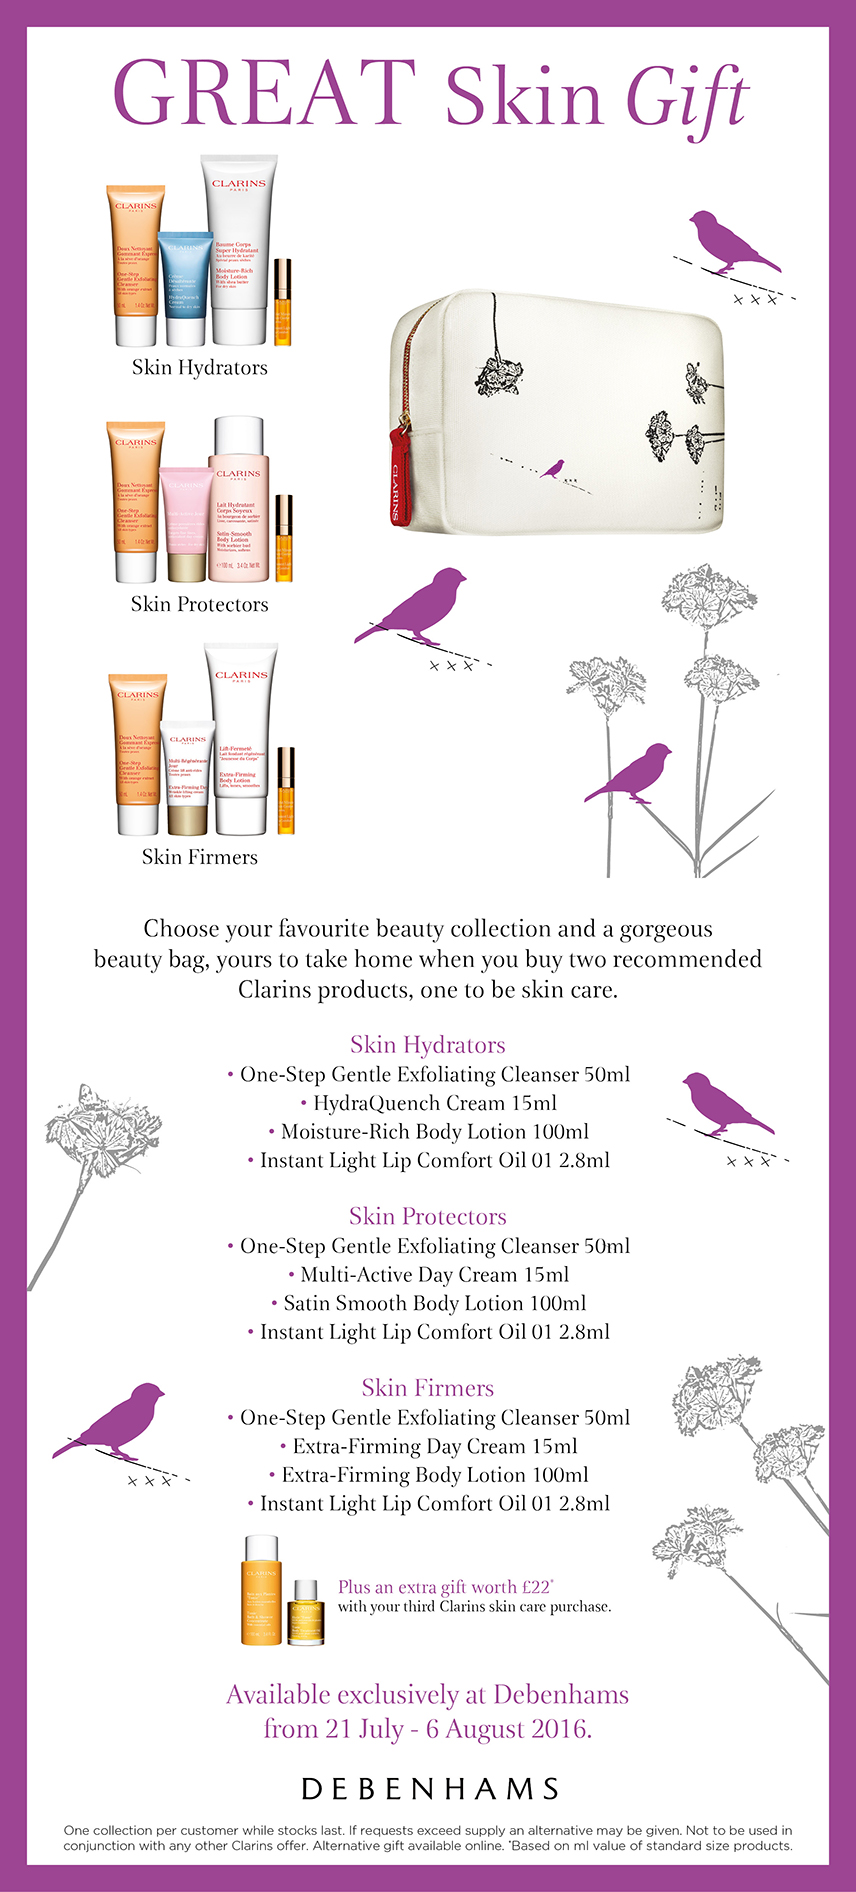 Debenhams Great Skin Gift Clarins